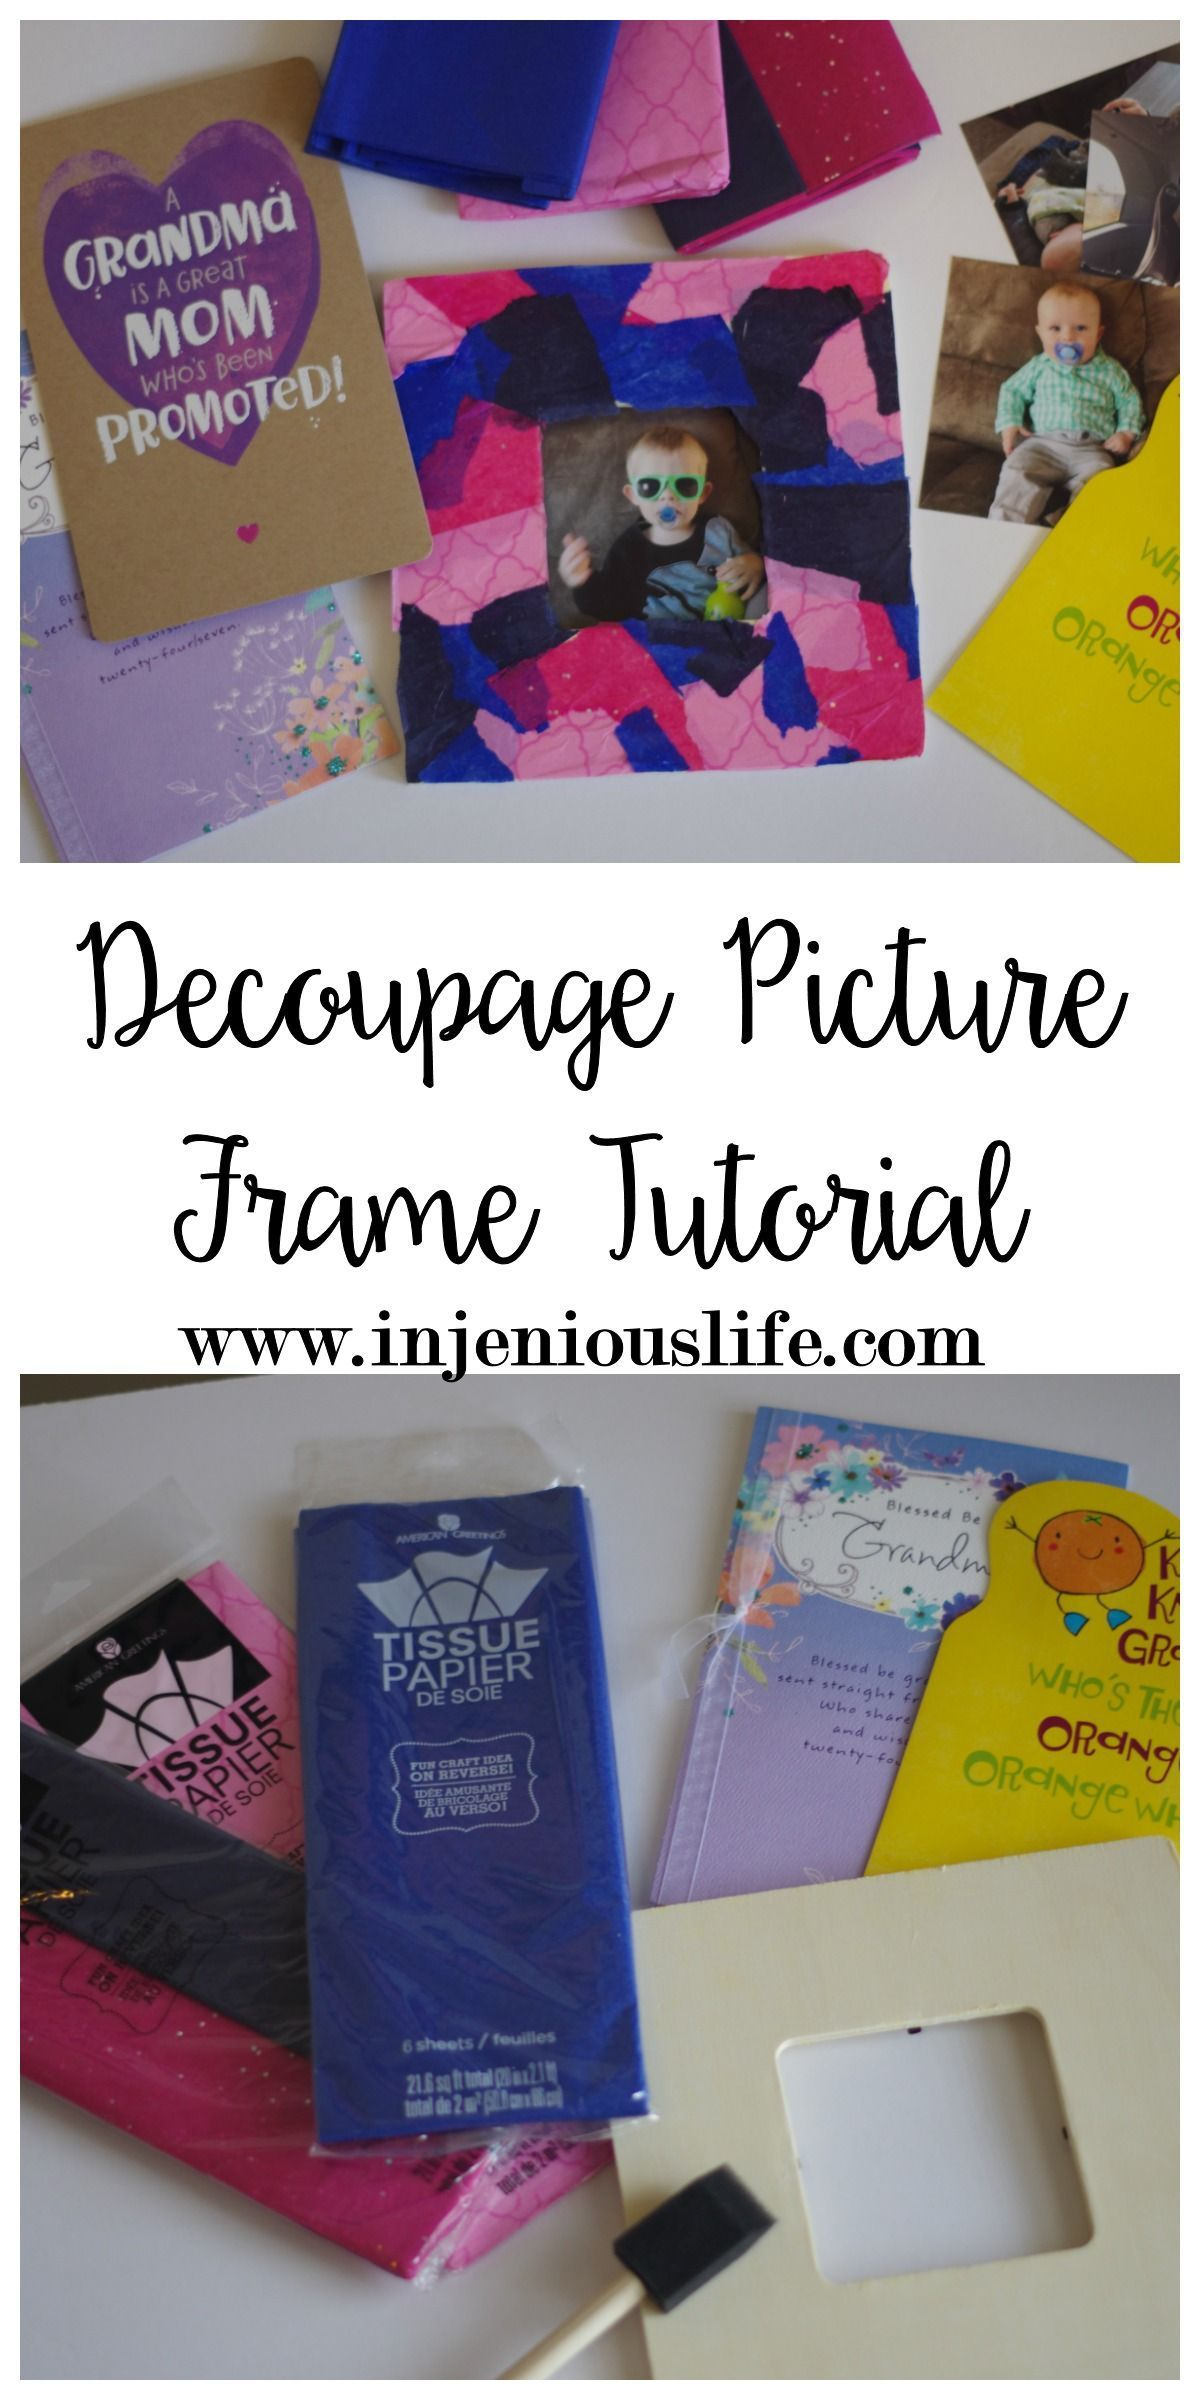 decoupage picture frame tutorial | pinterest | tissue paper